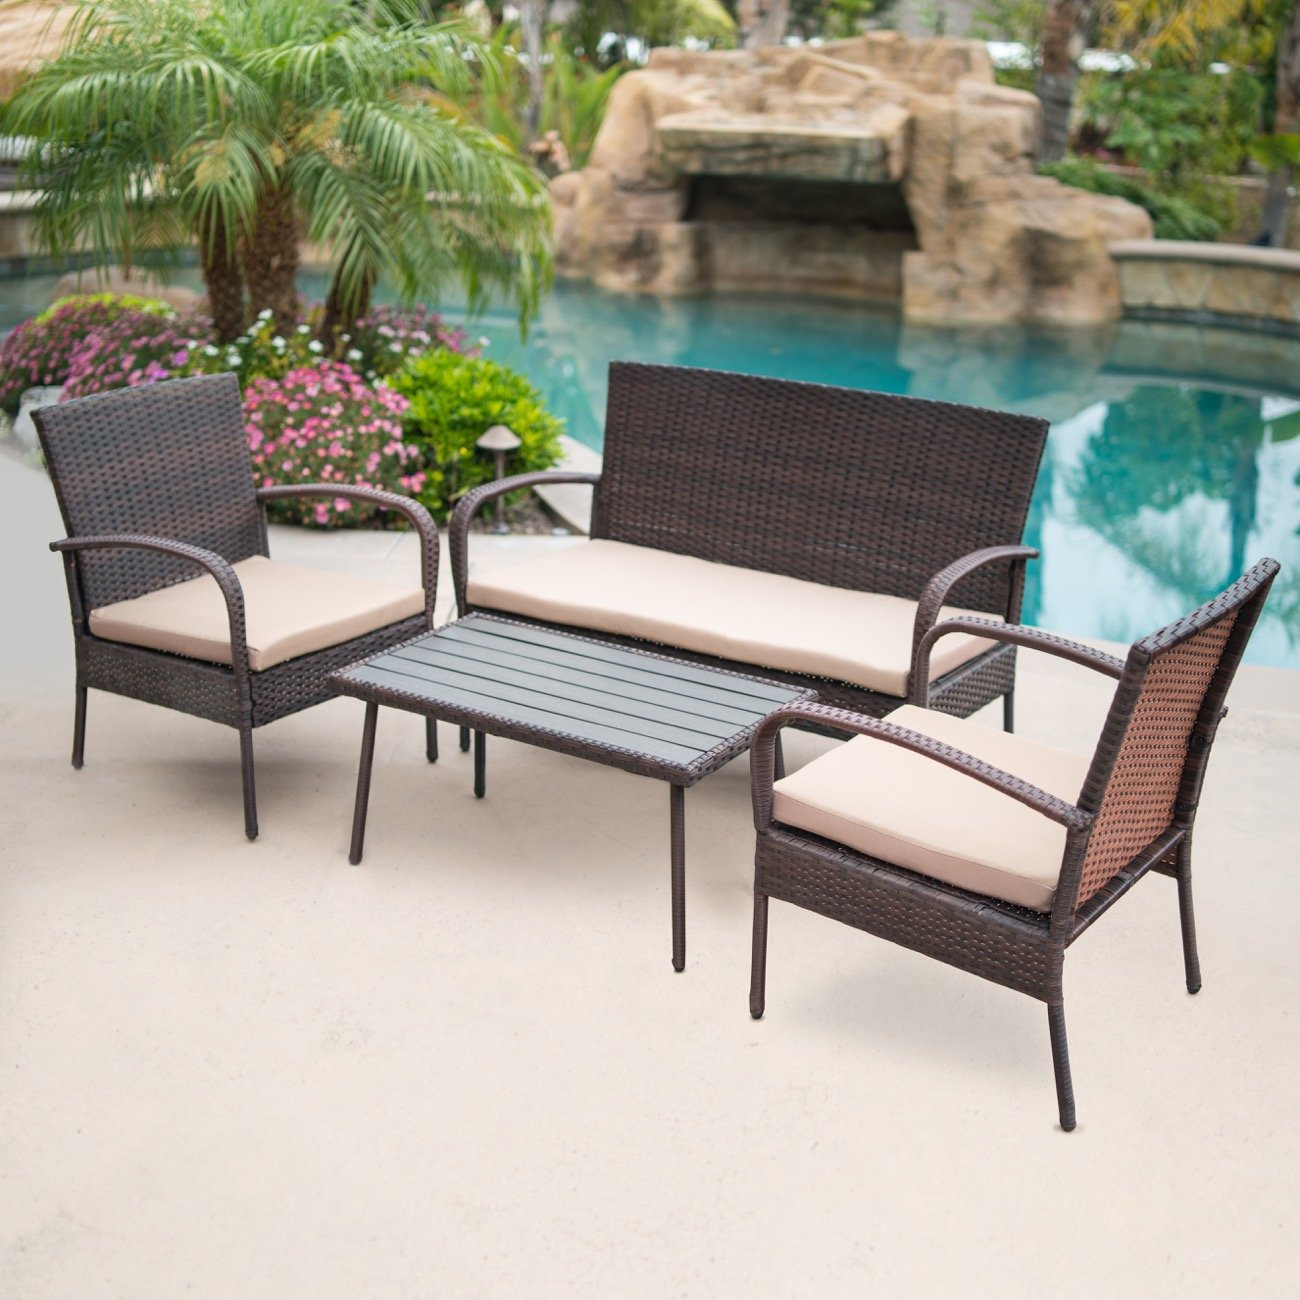 Belleze 4-PC Outdoor Patio Set Furniture Wicker Seat Comfortable Cushion Yard Coffee Table UV Resistant Backyard, Brown